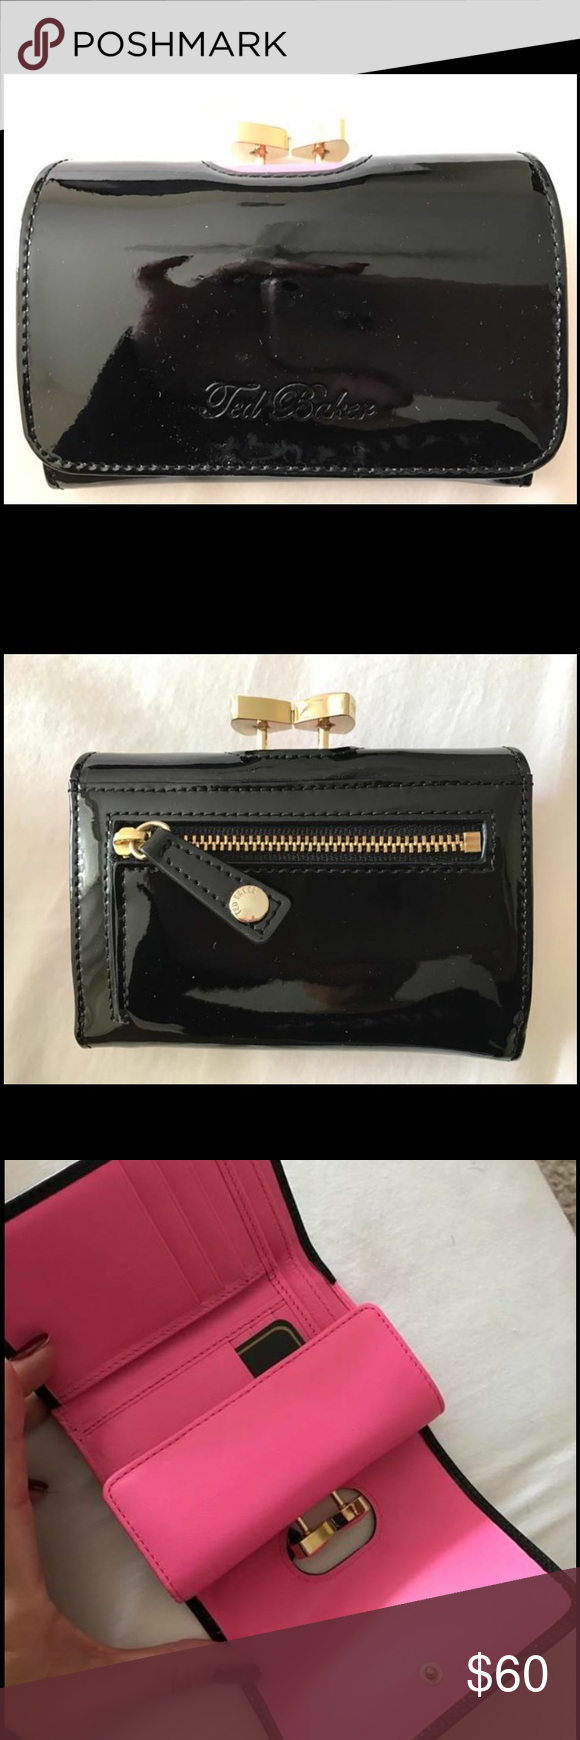 NWT! Ted Baker Wallet Gorgeous patent and pink leather. Lots of pockets and a coin purse! Inside has Ted Bakers trademark French Bulldog lining. Comes with gift boxes reatils for $120 Ted Baker Bags Wallets